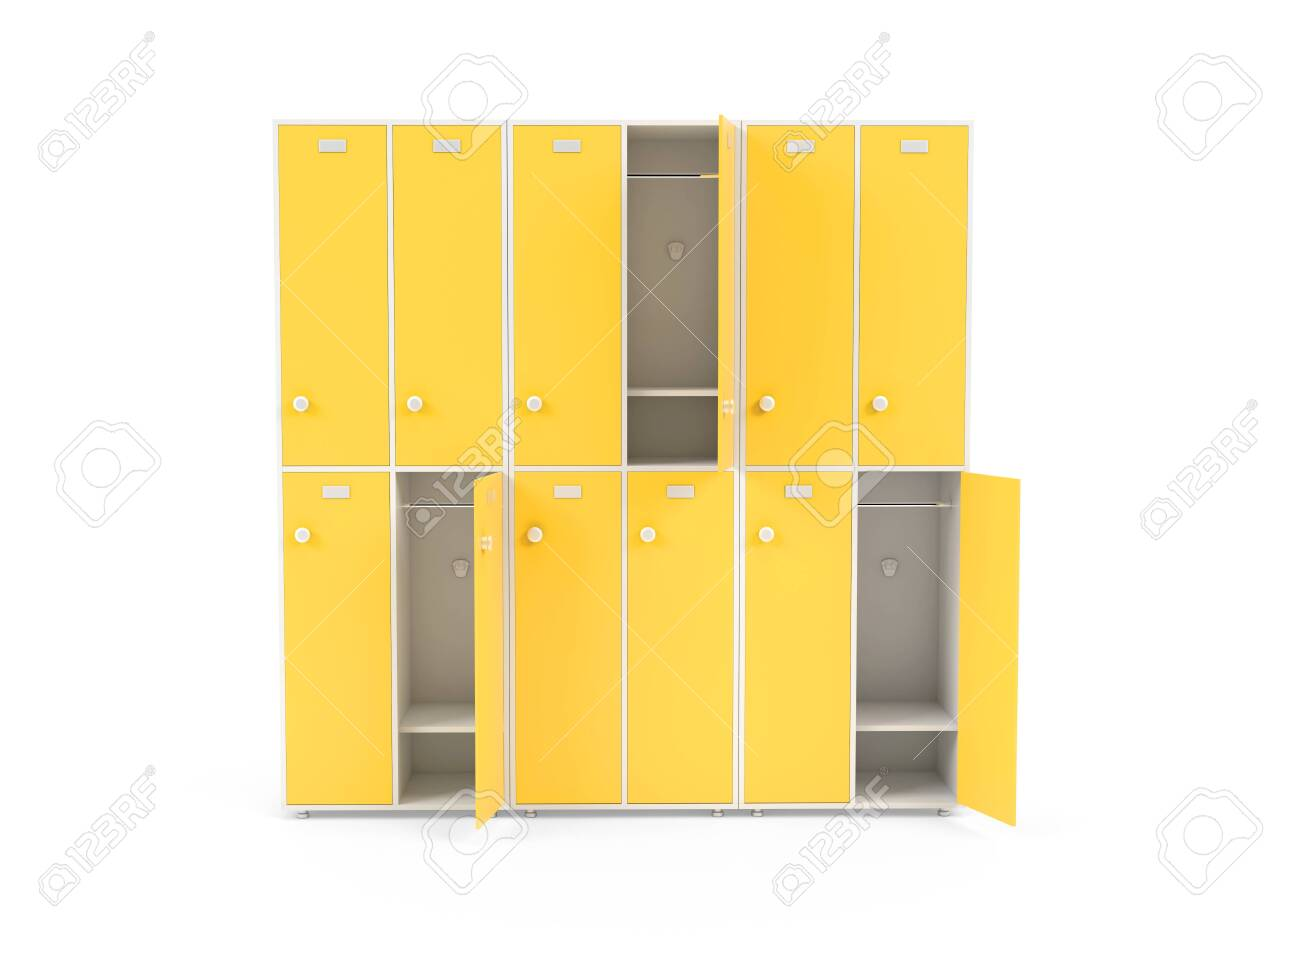 Yellow lockers. Two row section of lockers for schoool or gym. 3d rendering illustration isolated on white background - 150186212